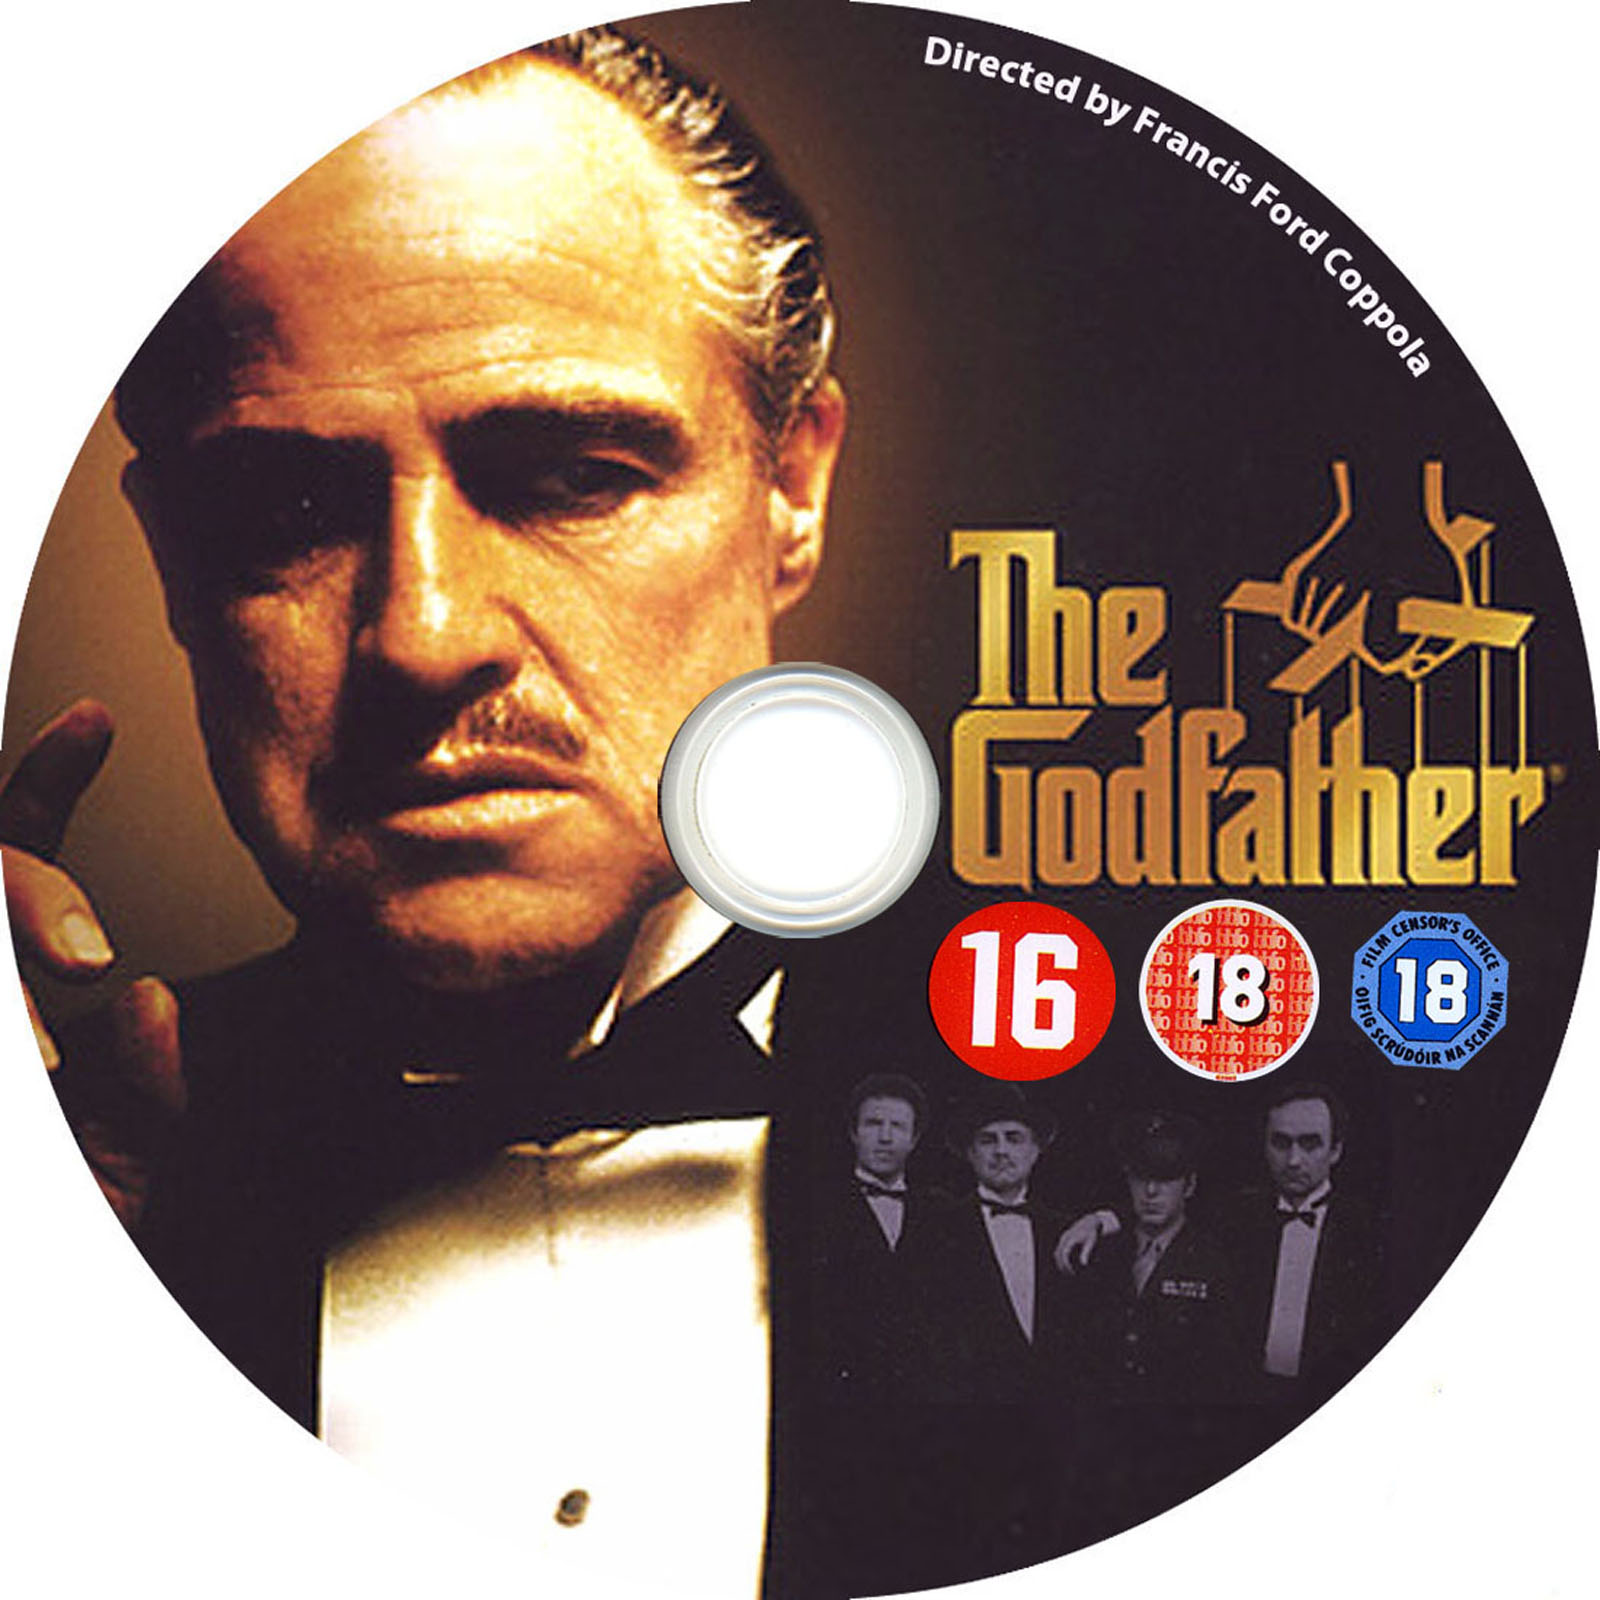 The Godfather DVD Label Art